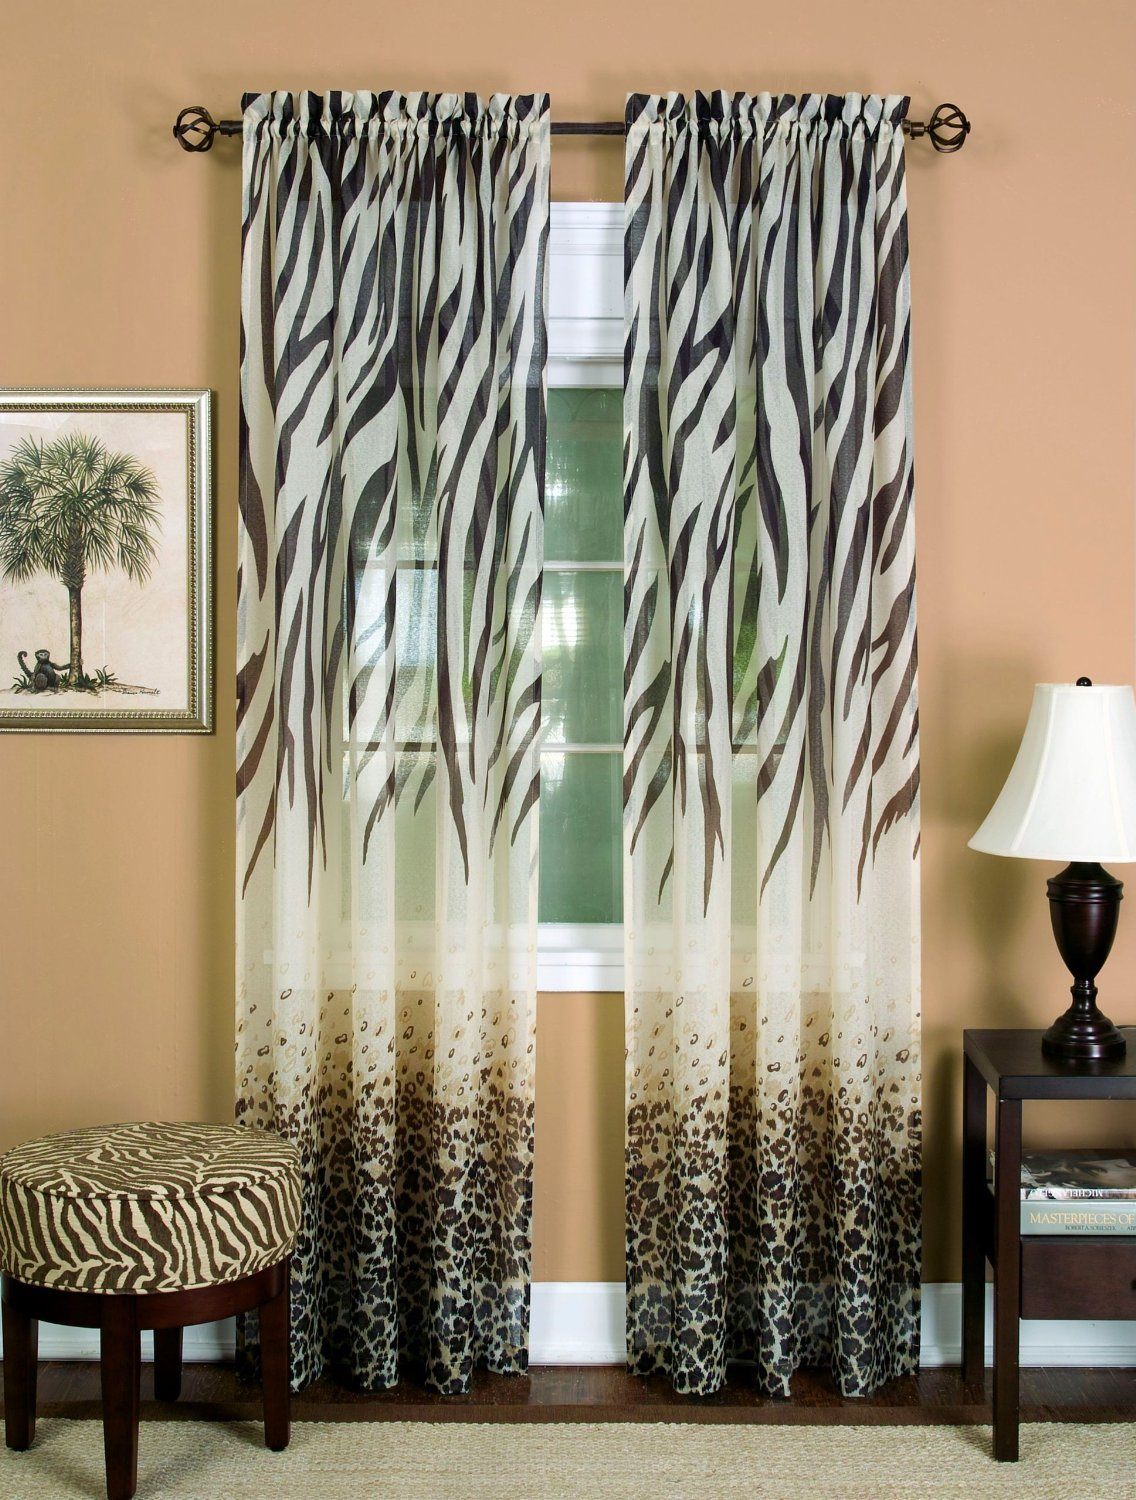 Safari Elegance Zebra/Leopard Animal Print Window Curtain Panel - Set of 2 - Brown/White - (50 x 84-Inch)